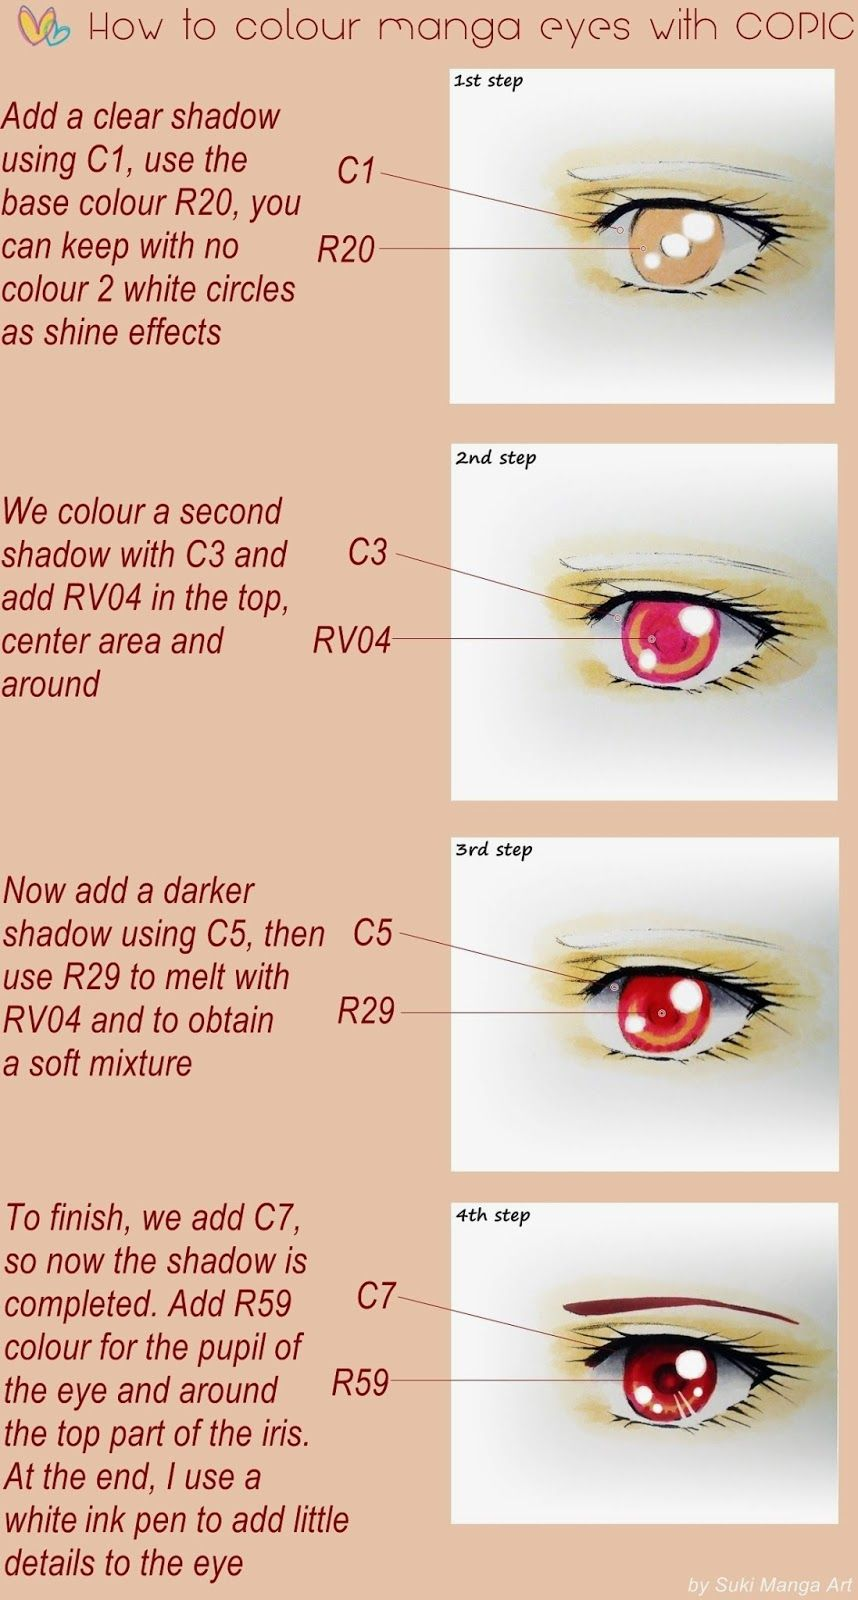 A Little Guide On How I Colour An Eye Hope You Guys Like It And Thank You All So Much For 9k Eye Eyes Cop Anime Eye Drawing